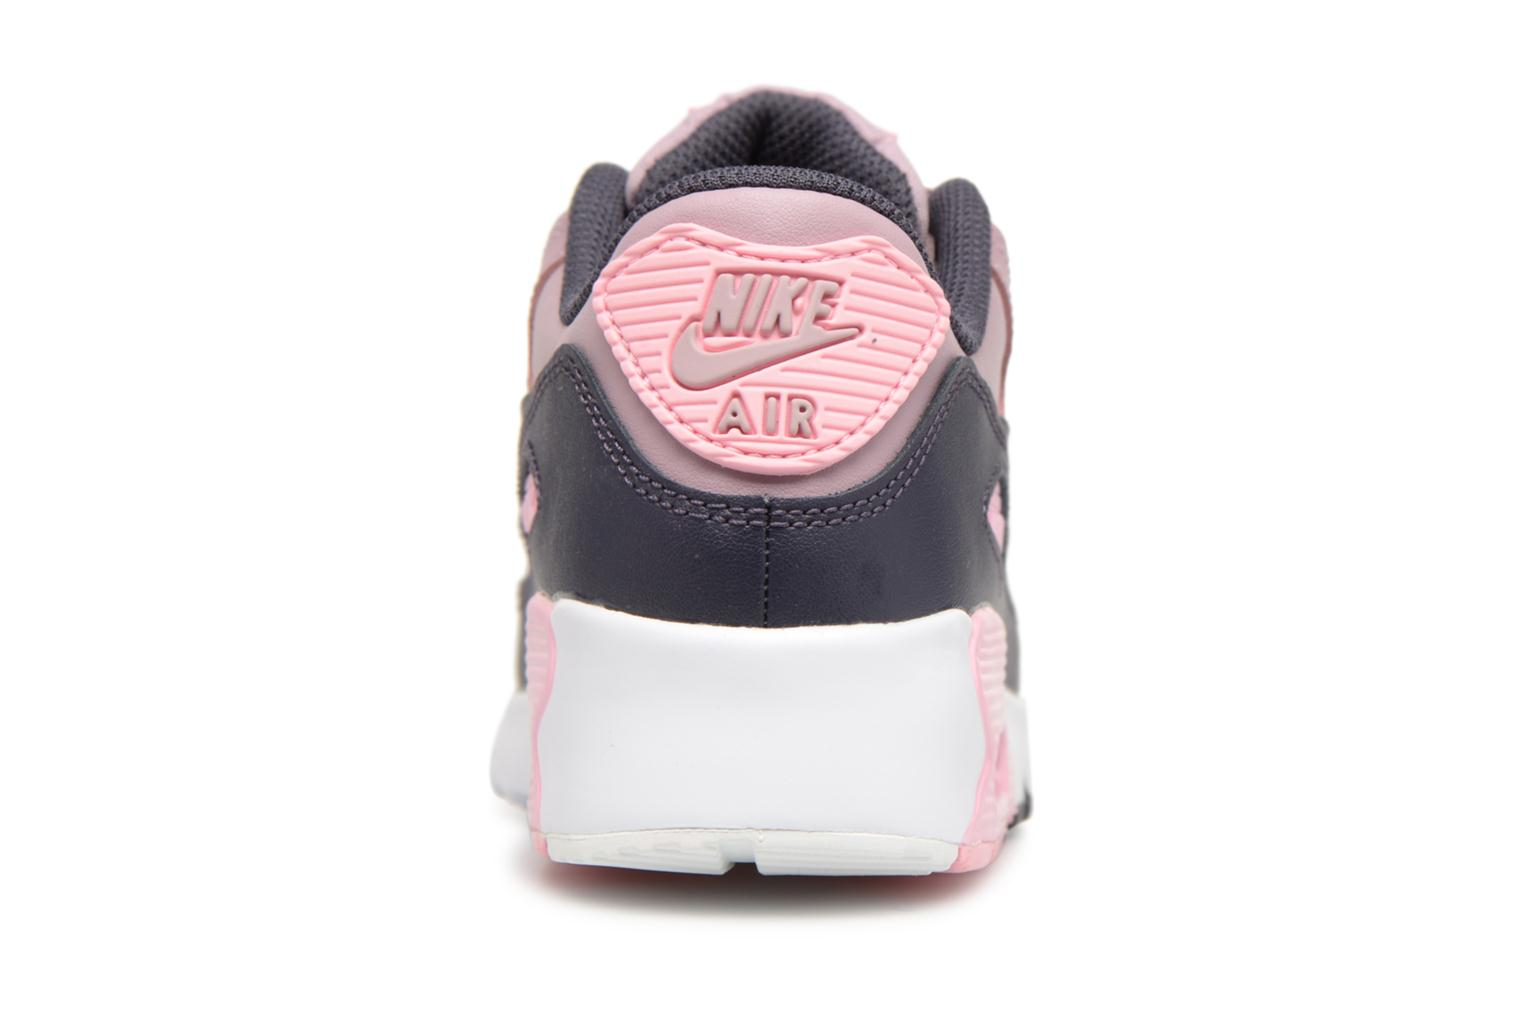 Gridiron Air White 90 Pink Max Rose LE PS Nike Elemental Z0AqRAF